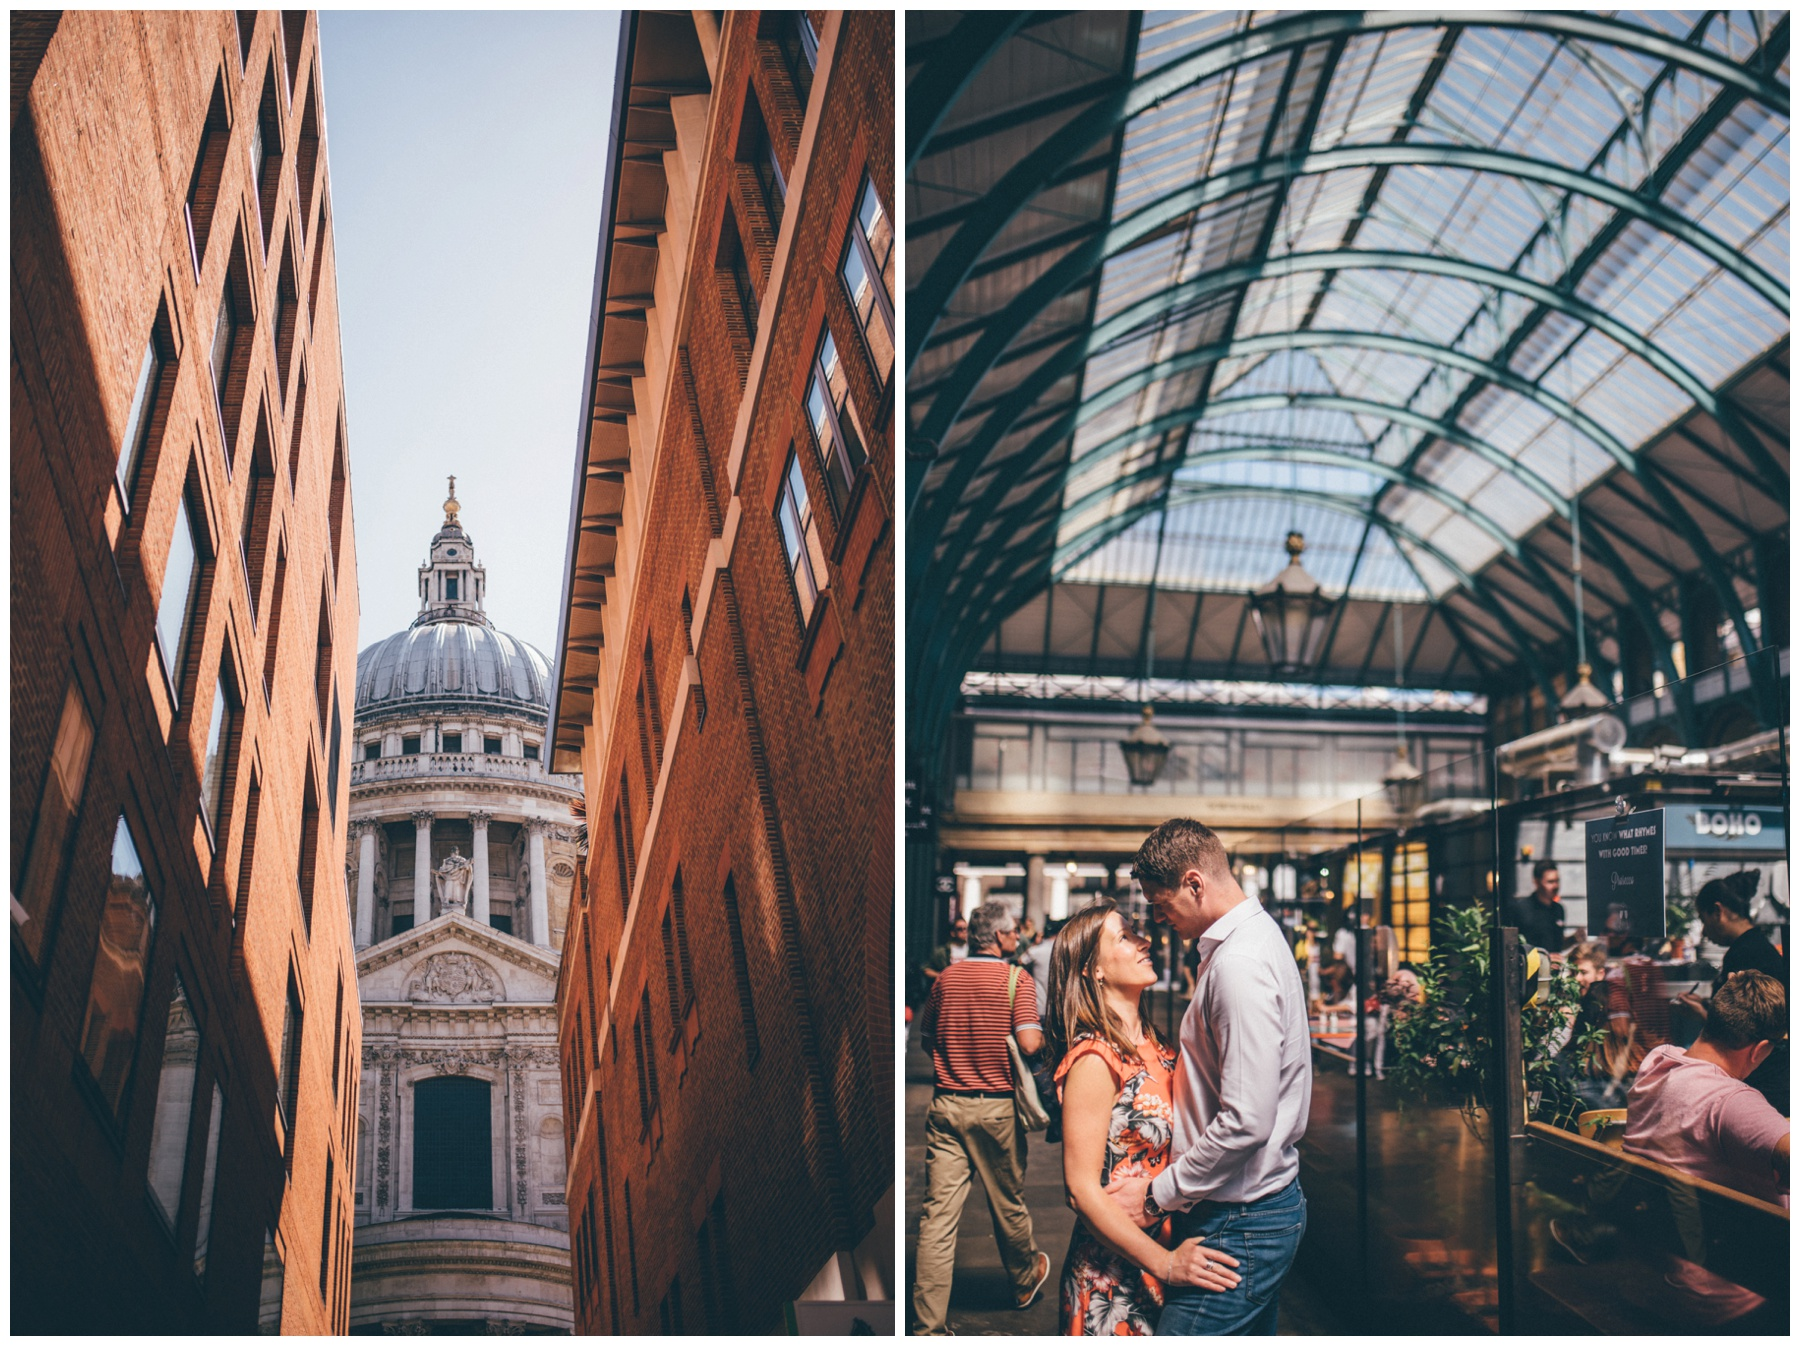 Photoshoot around Covent Garden.